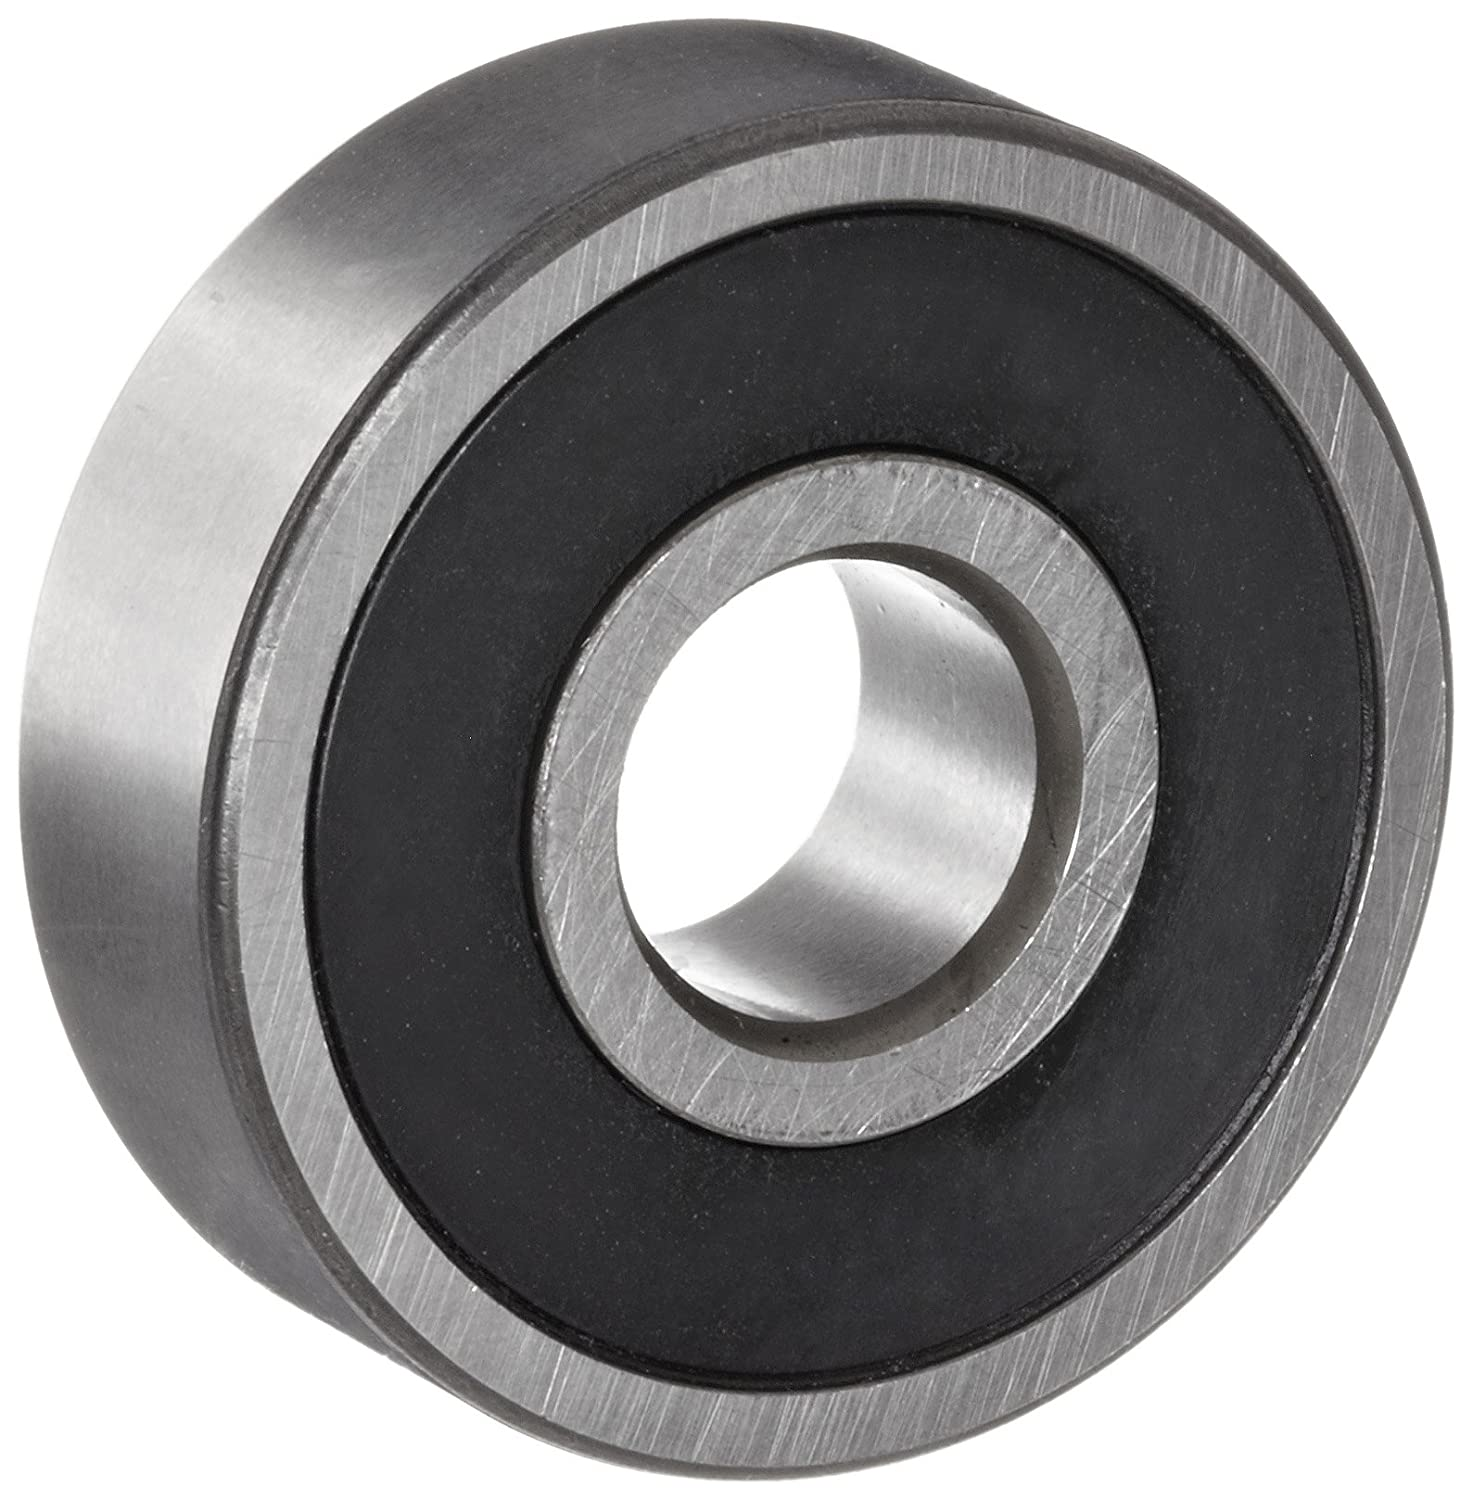 NSK 608VV Deep Groove Ball Bearing, Single Row, Double Sealed, Non-Contact, Pressed Steel Cage, Normal Clearance, Metric, 8mm Bore, 22mm OD, 7mm Width, 34000rpm Maximum Rotational Speed, 1370N Static Load Capacity, 3300N Dynamic Load Capacity